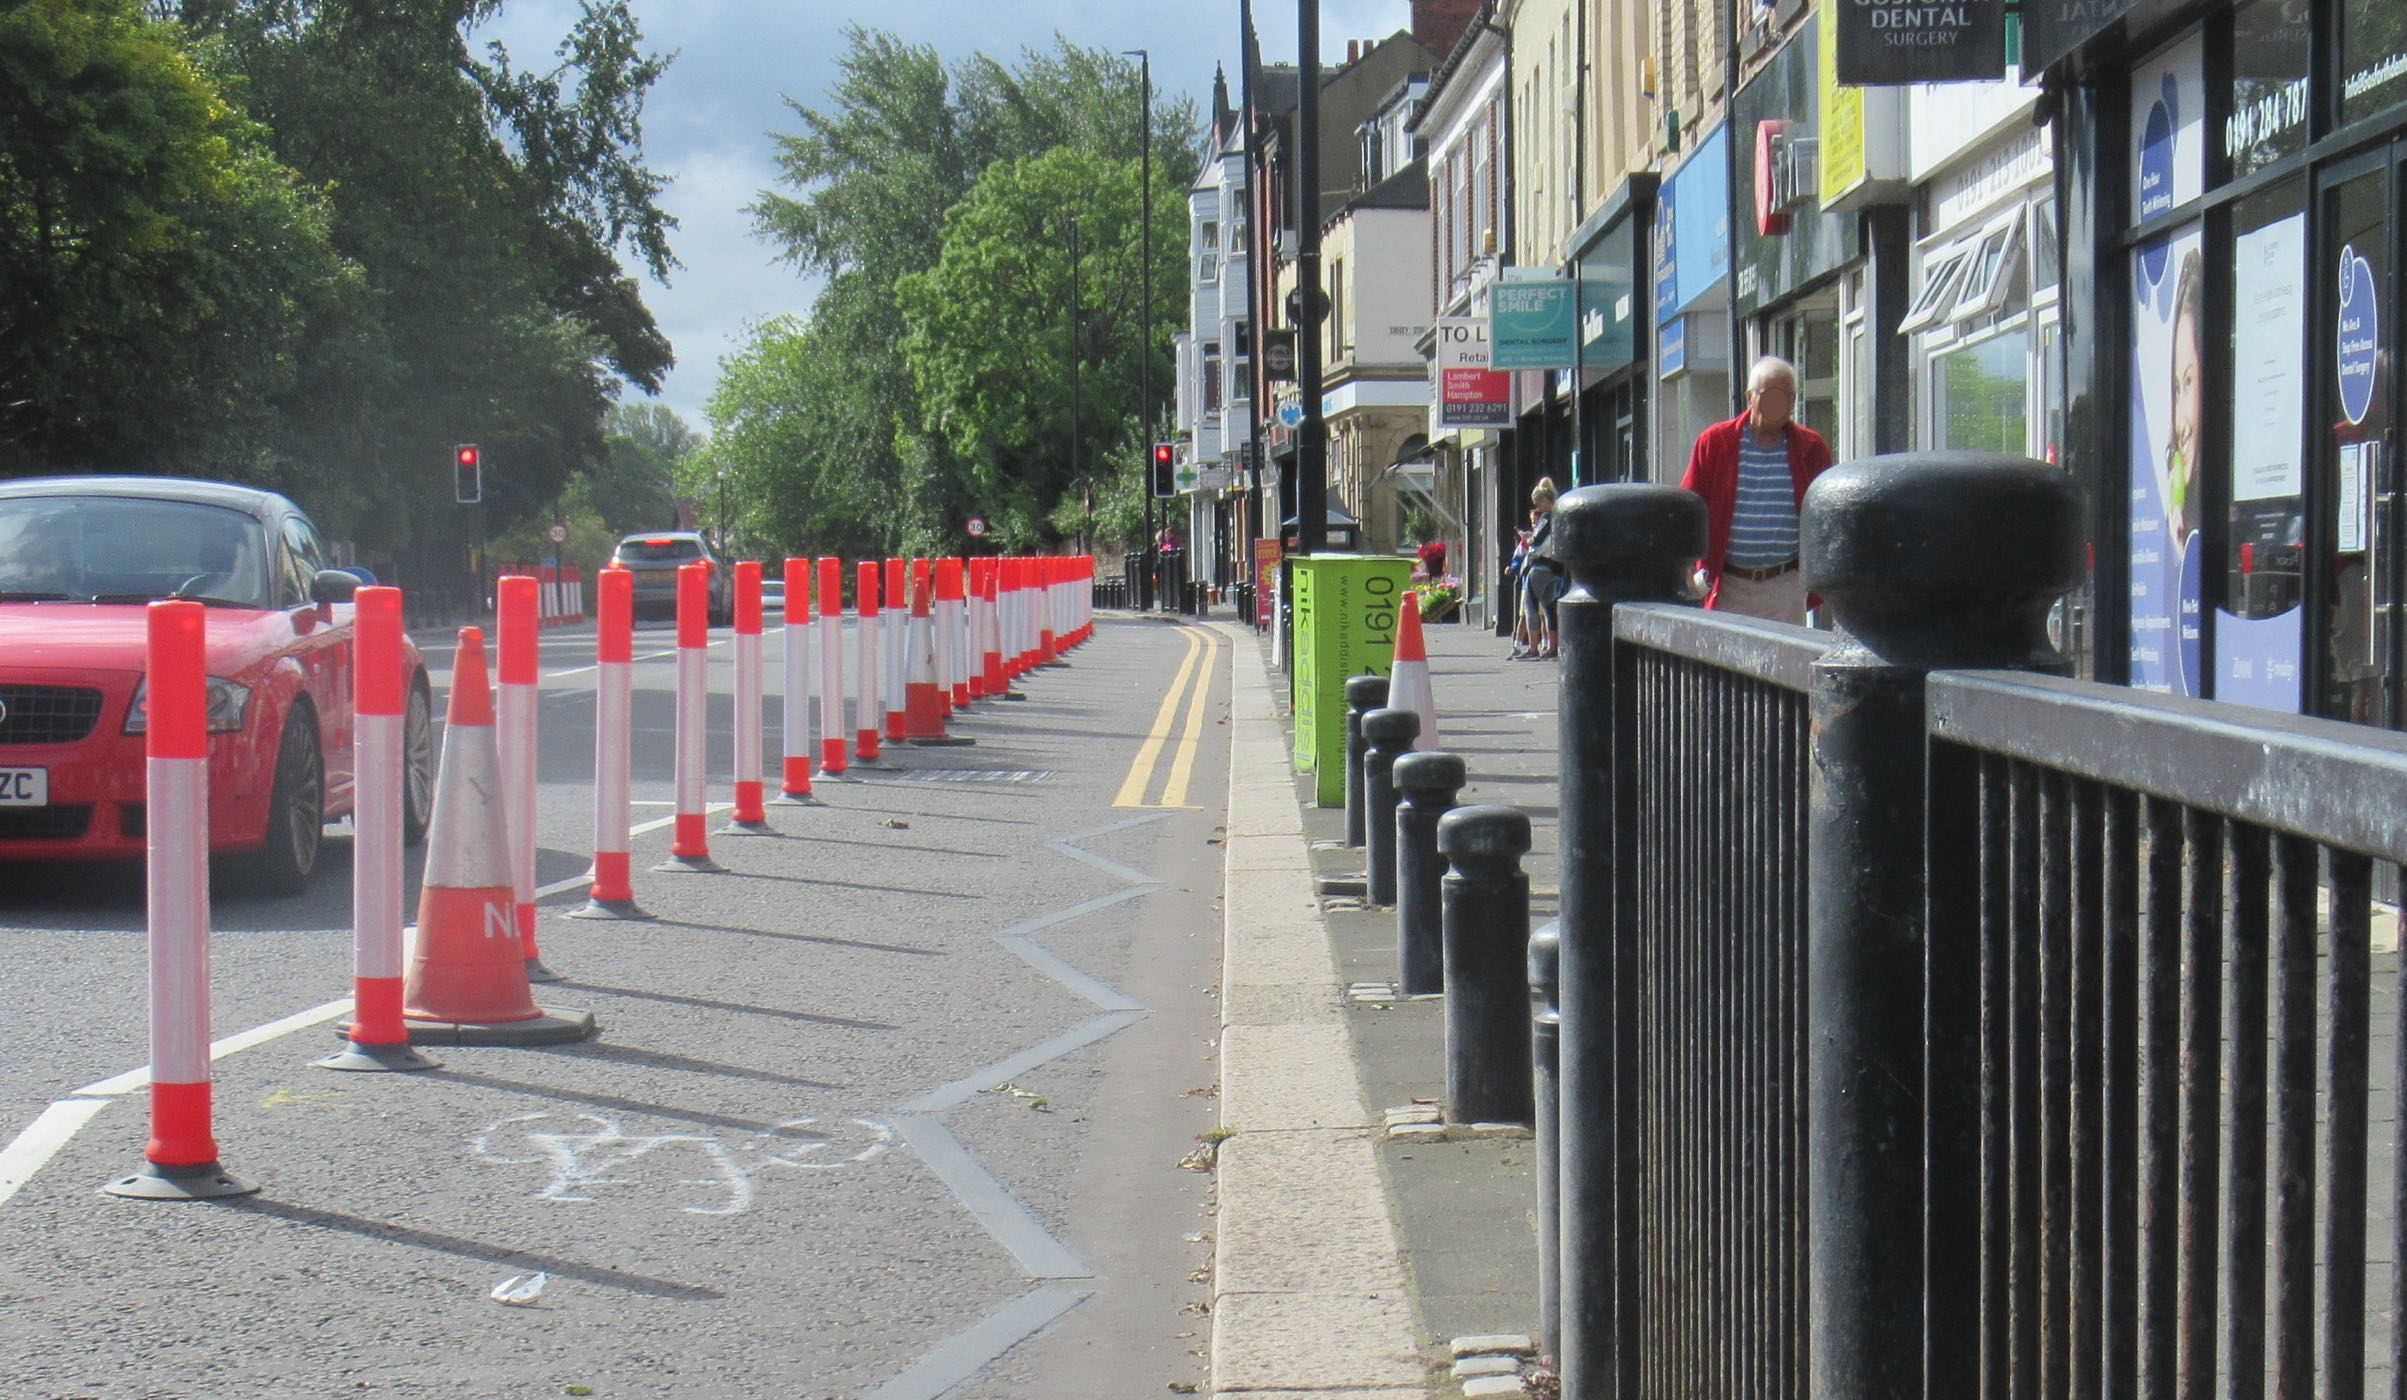 Cycle lane protected by poles west side of High Street south of The County